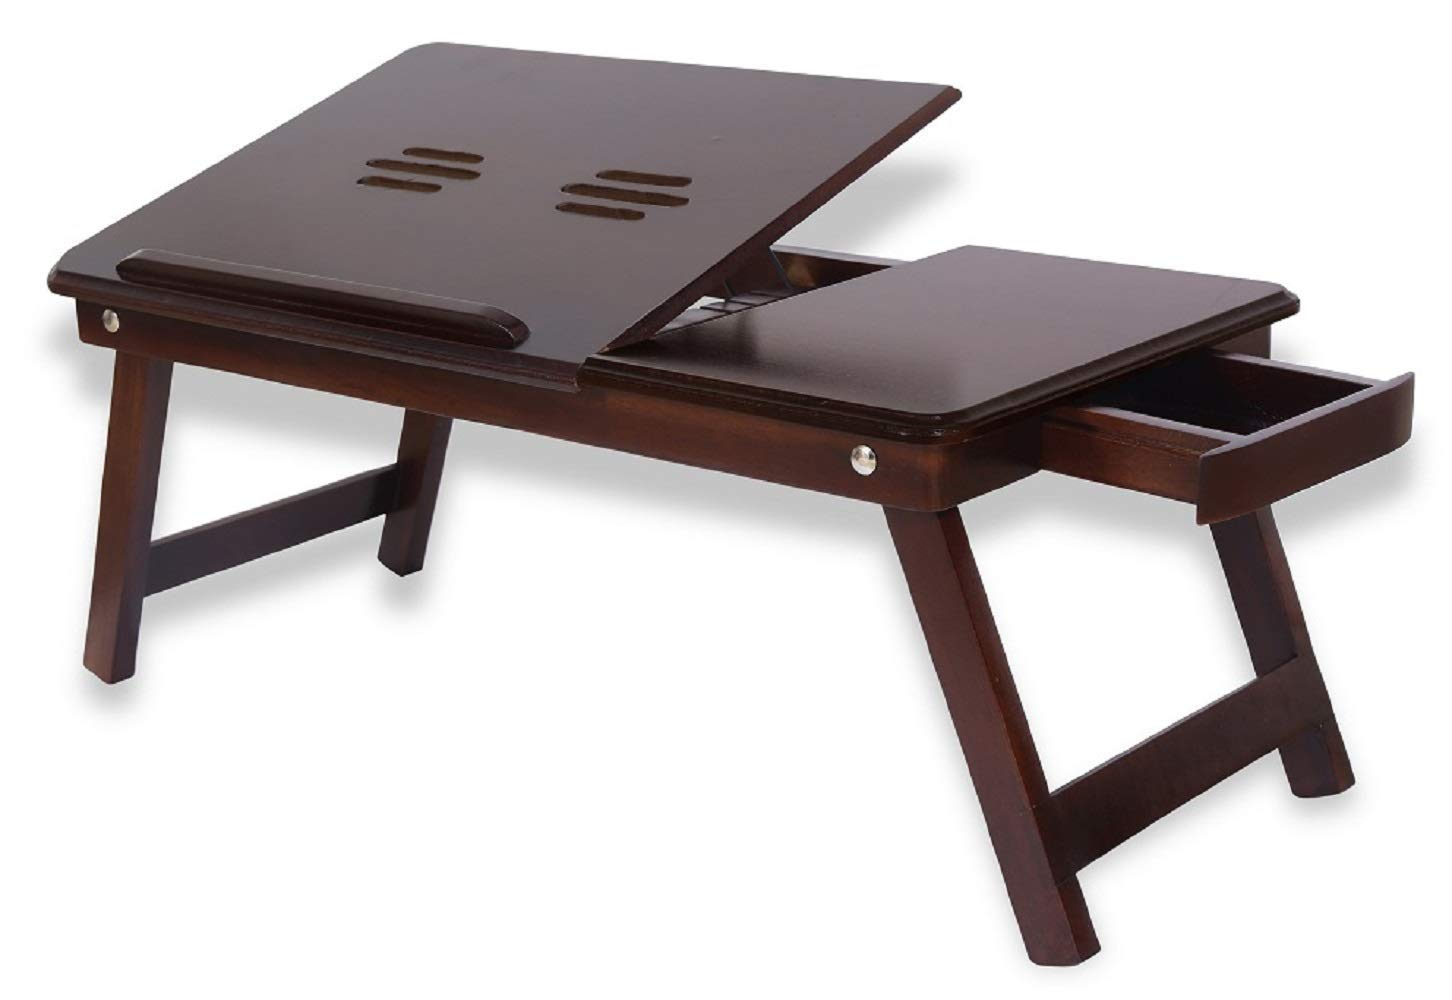 Ghar Kraft Wooden Adjustable Foldable Multi Function Portable Laptop Table/Study Table  Brown  Pack of 1